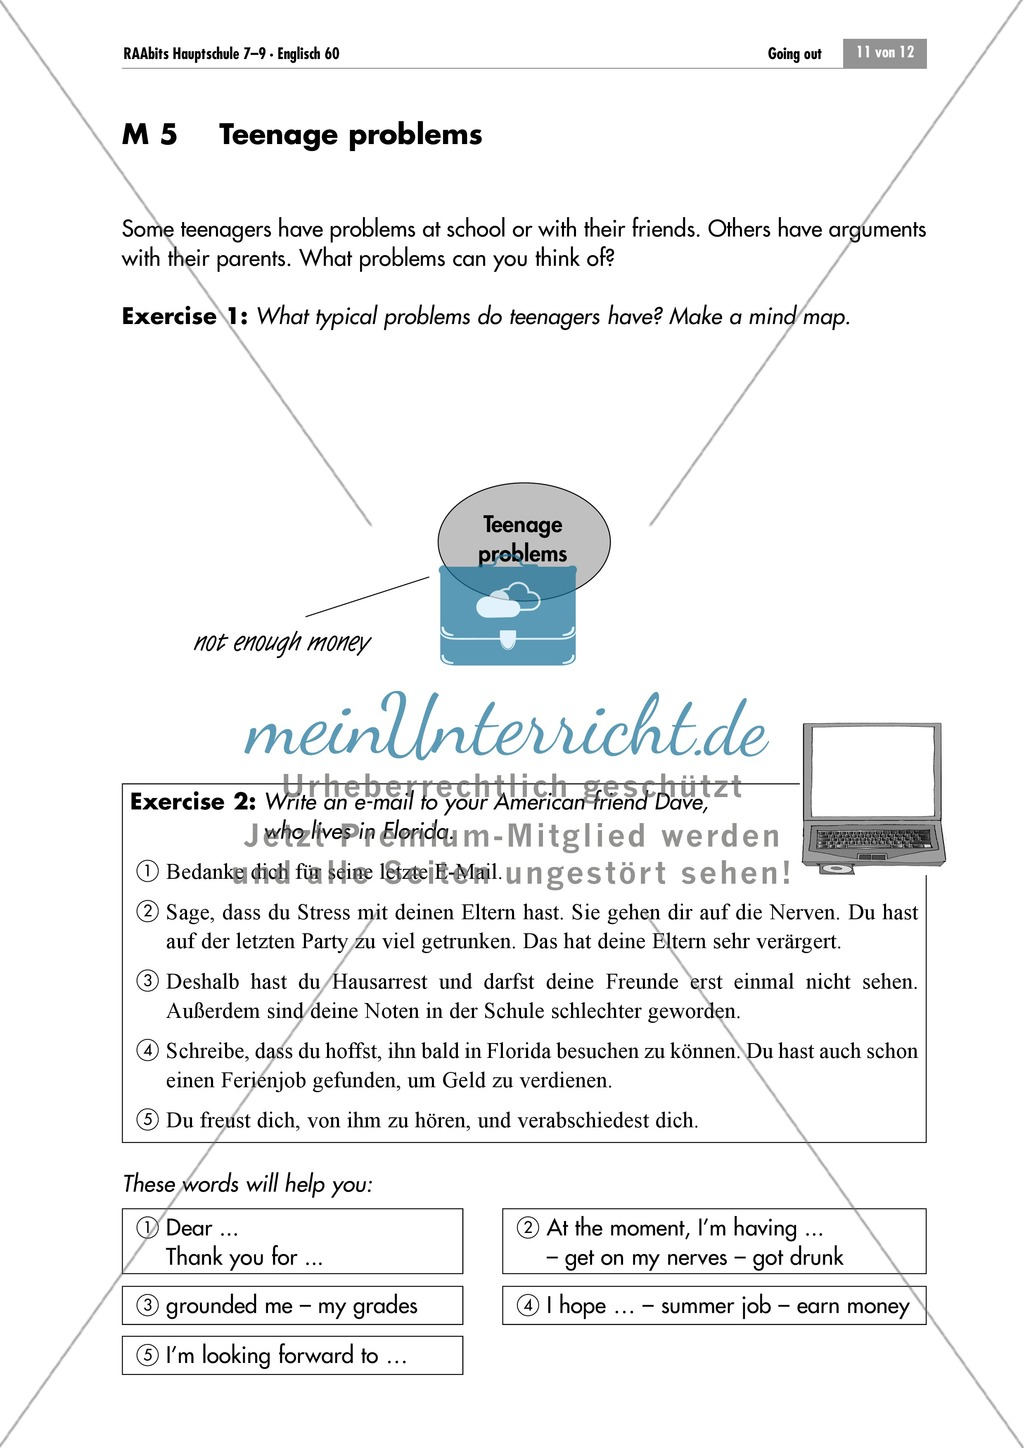 Teenage problems: Mind map and mediating task Preview 0